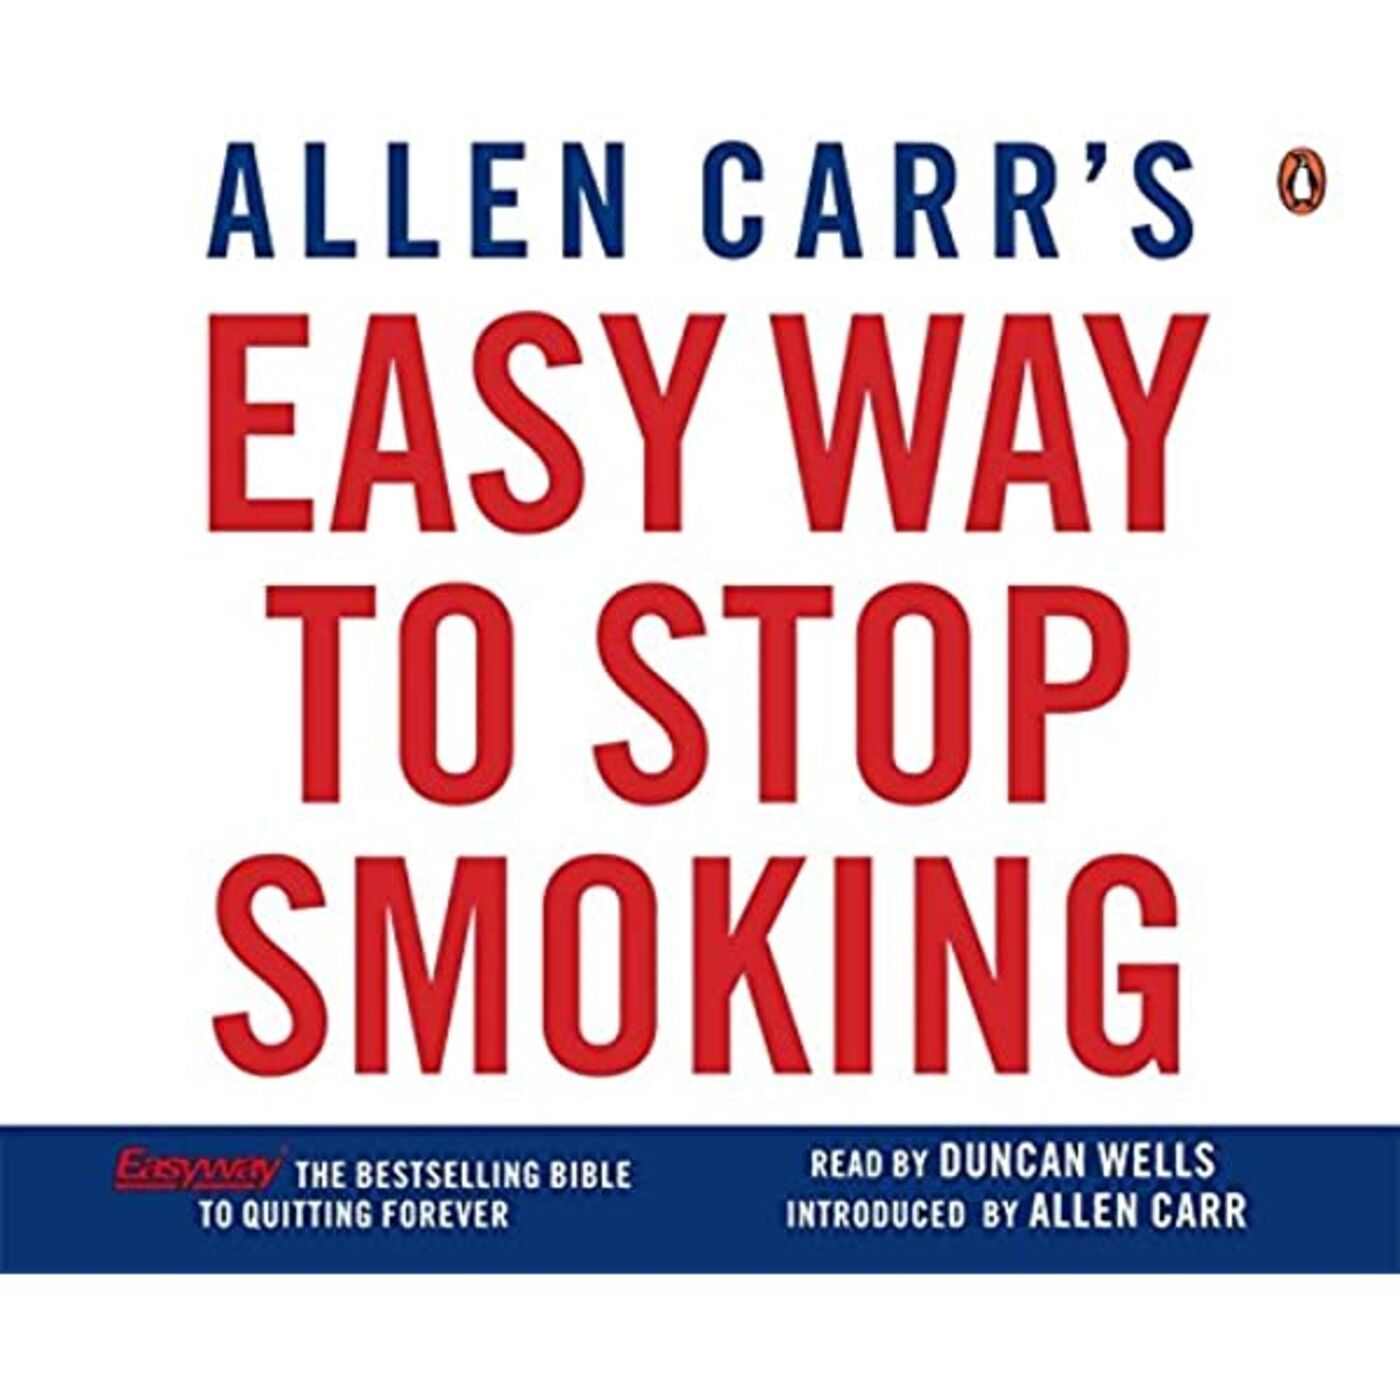 Stopping smoking - easier than you think